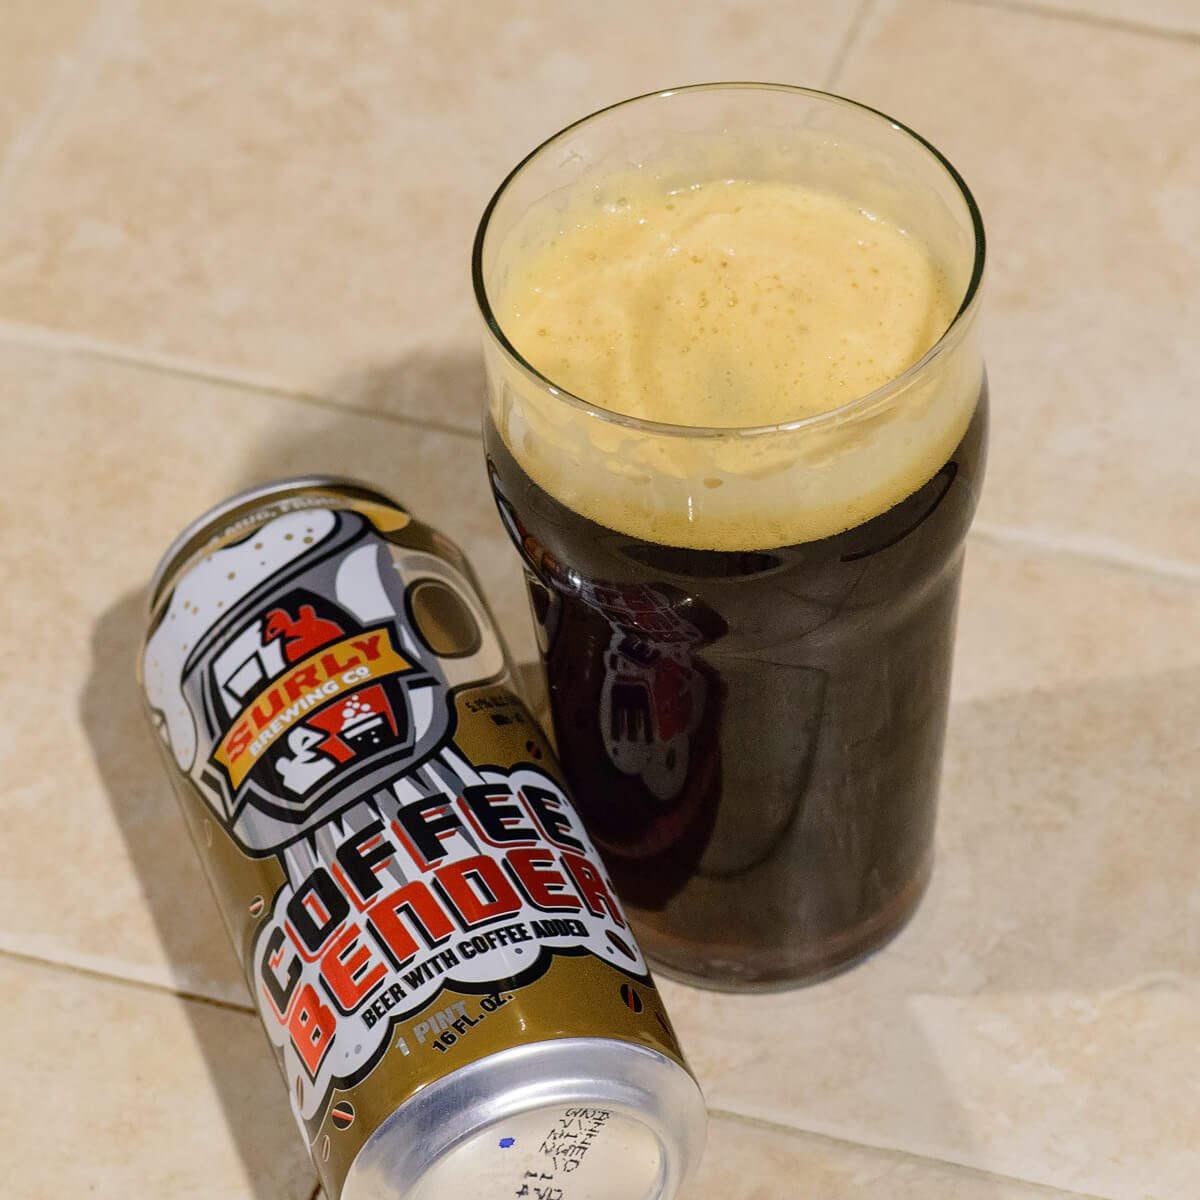 Coffee Bender, an American Brown Ale by Surly Brewing Co.